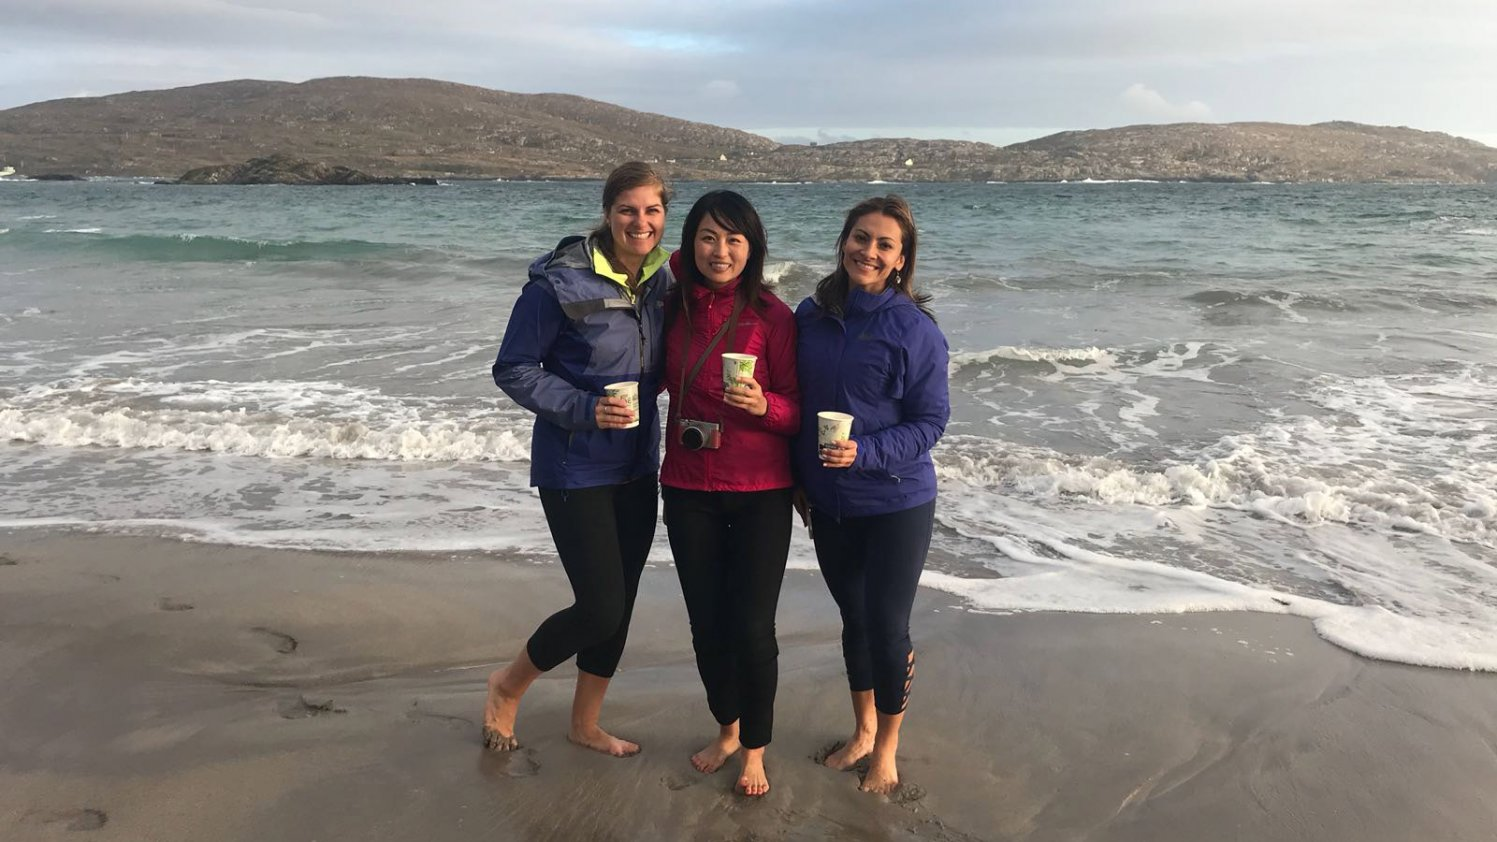 Solo Travel to Ireland Guide - UPDATED April 2019 | Vagabond